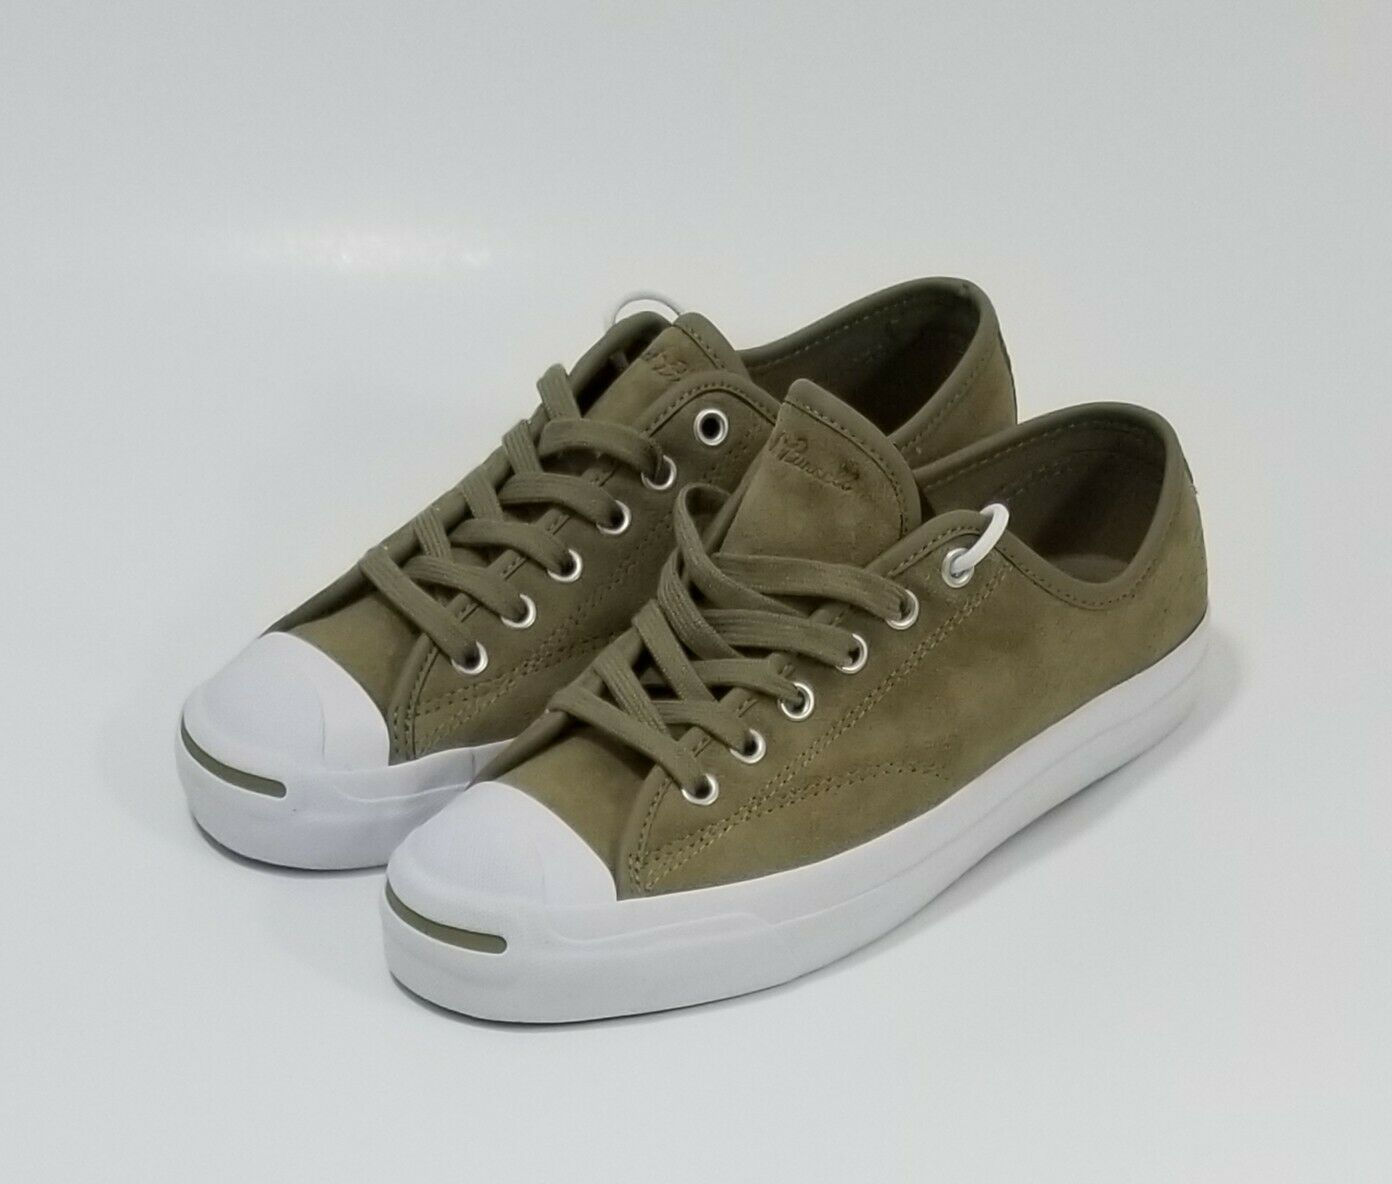 Converse Jack Purcell PRO OX Low Top shoes Women Size 8 Khaki Tan Suede